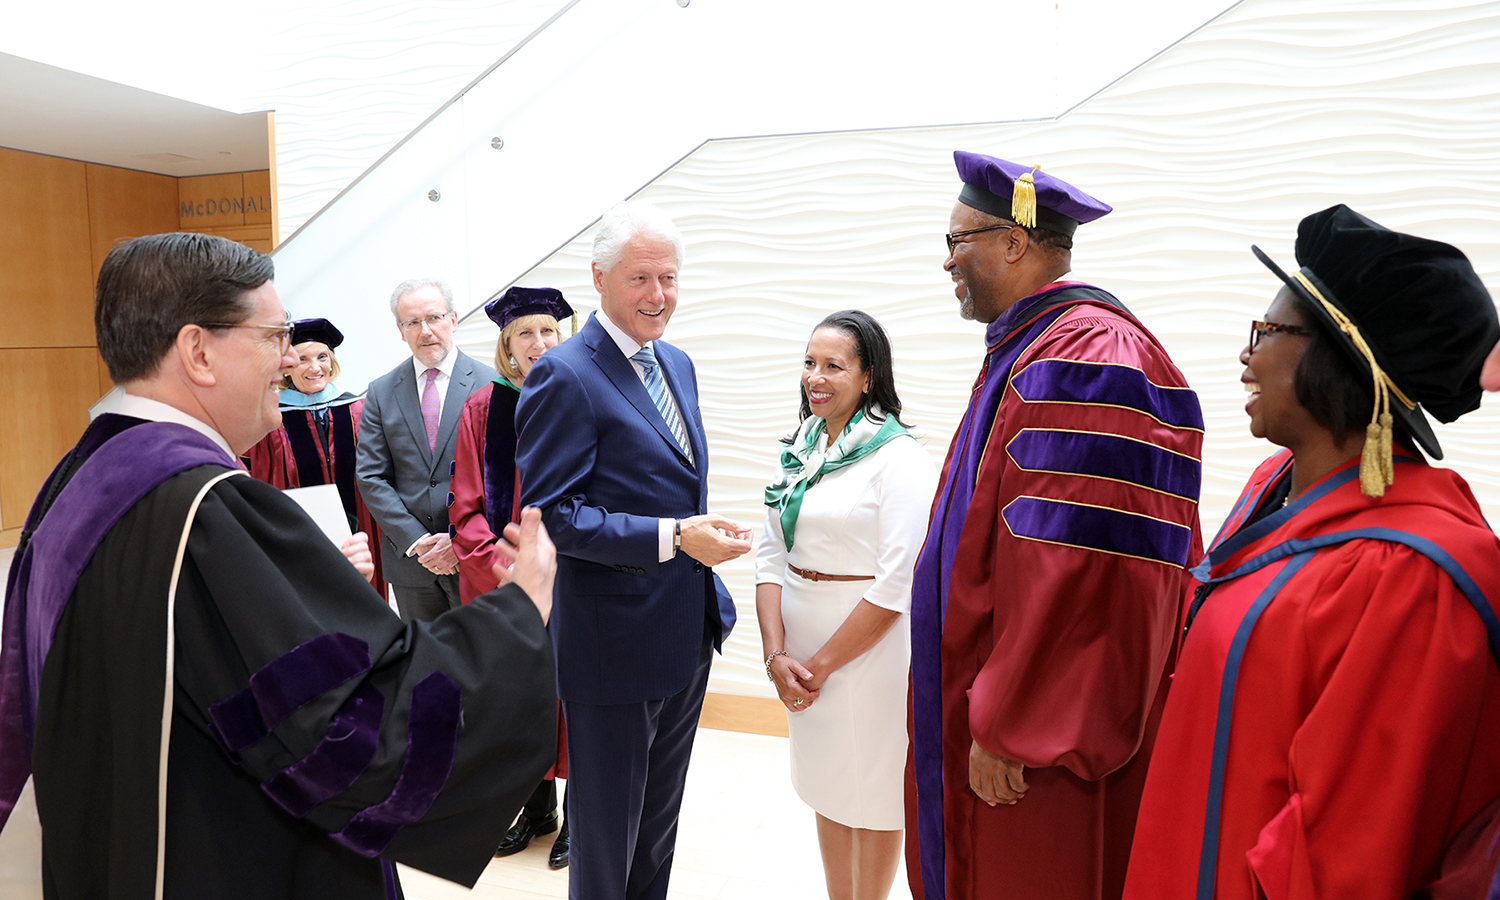 President Bill Clinton chats with HWS President-elect Gregory J. Vincent '83 and his wife, Kim Vincent, before Sunday's Commencement Ceremony.